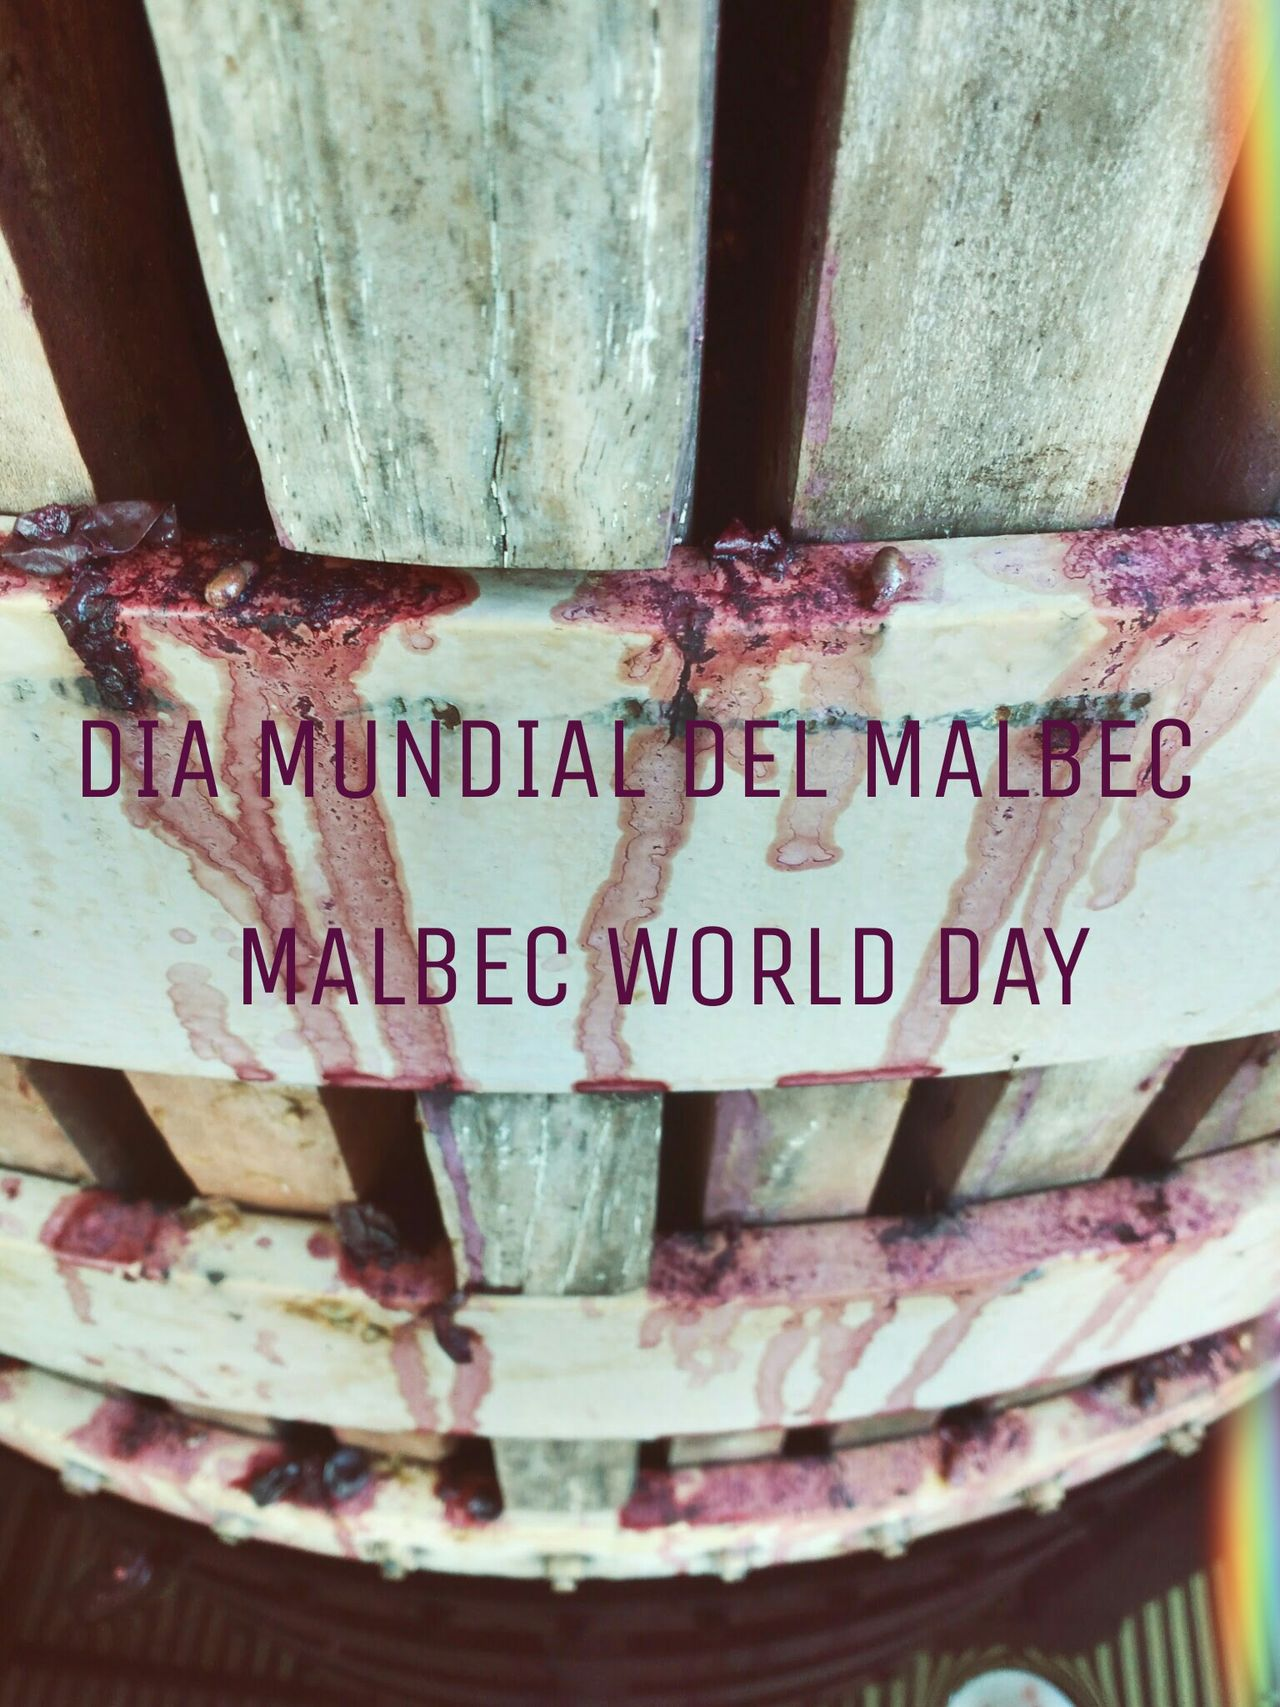 Wine Winery Wine Moments Winetasting Winelover Wine Barrels Wine Grapes Wine? Oh! Winelovers  Winemaking Wine Time Day Communication Western Script Text No People Close-up Malbec MalbecWorldDay Malbec Argentino Malbecabsoluto Enjoying Life Enjoying The Sun Enologist Enologia